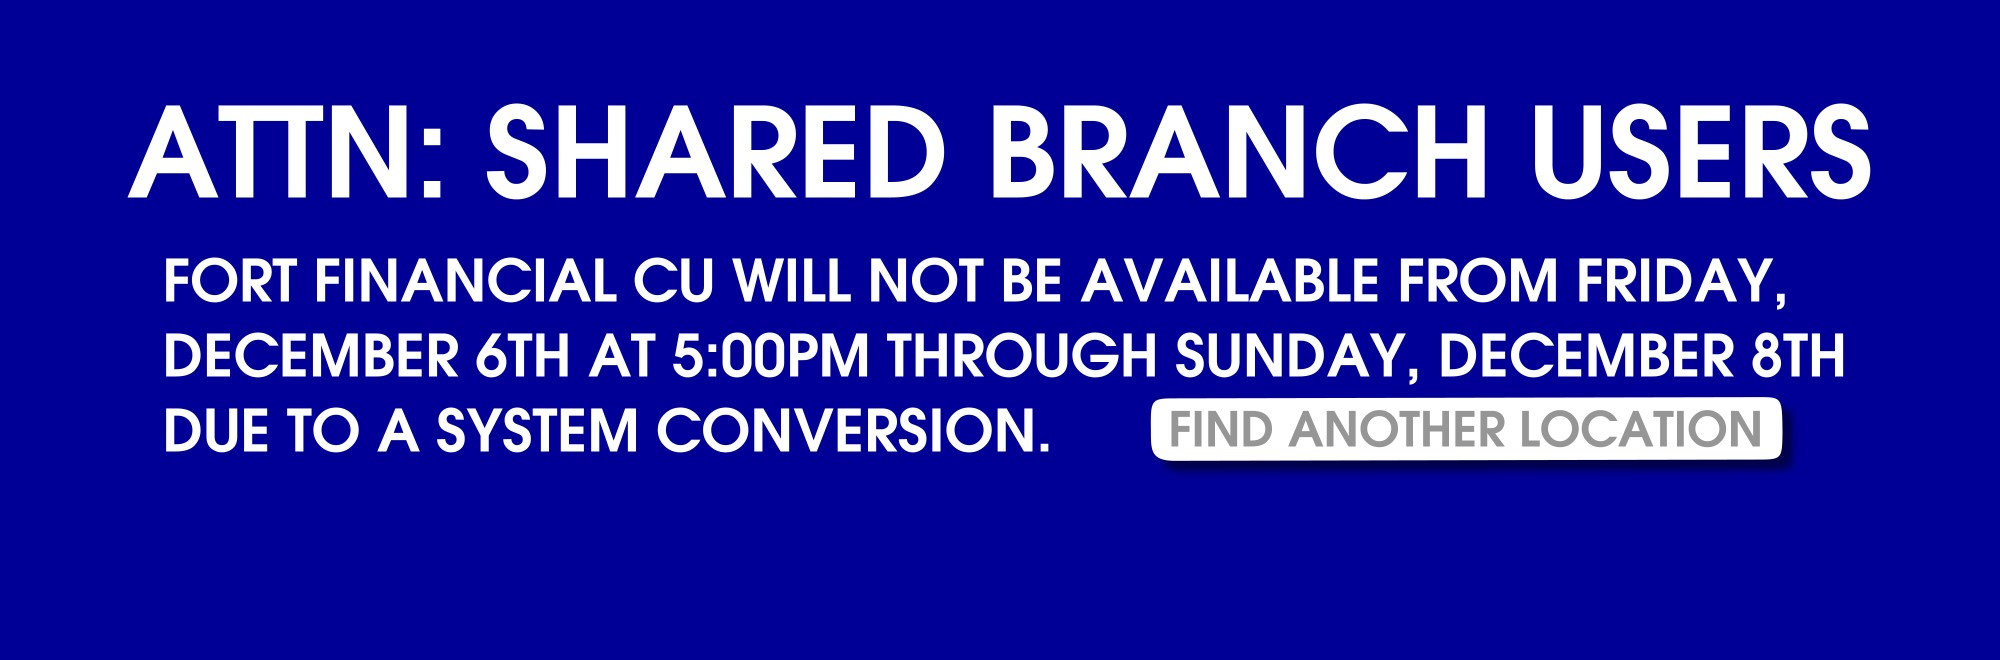 attn: shared branch users.  Fort Financial CU will not be available this weekend from 5:00 friday through sunday.  click to find another location.